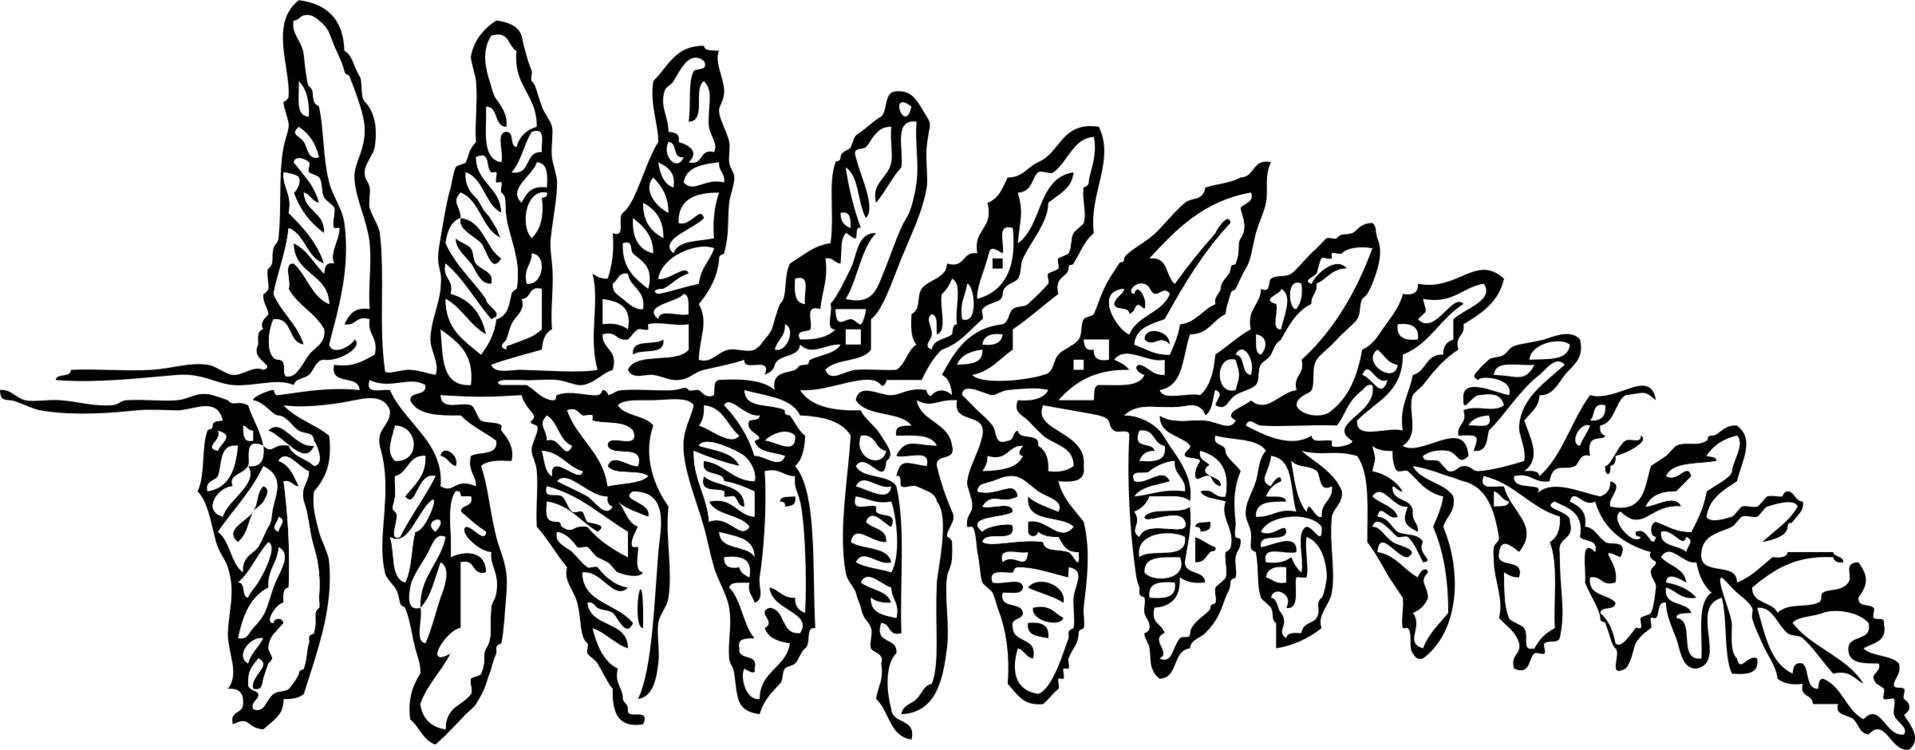 Fern clipart line art. Drawing frond leaf black